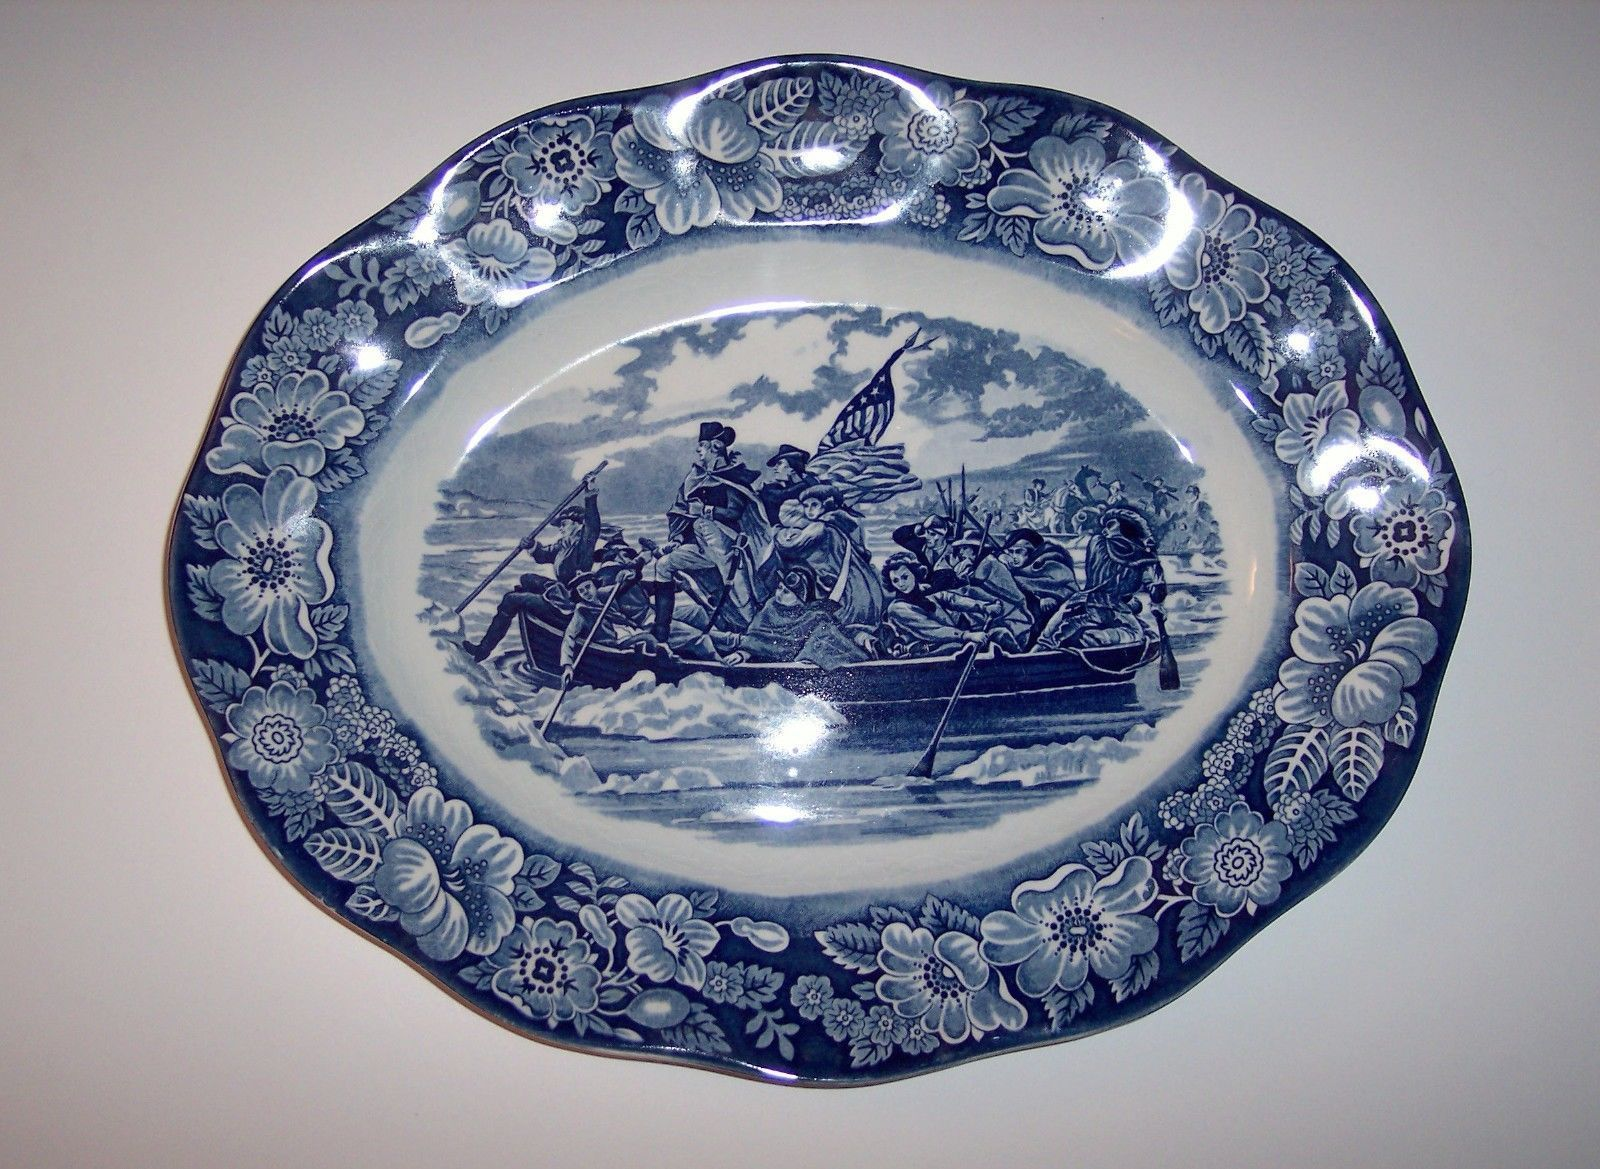 Vintage Liberty Blue China By Enoch Wedgewood Staffordshire England Made For 1776 1976 Bicentennial Celebration Of Americas Declaration